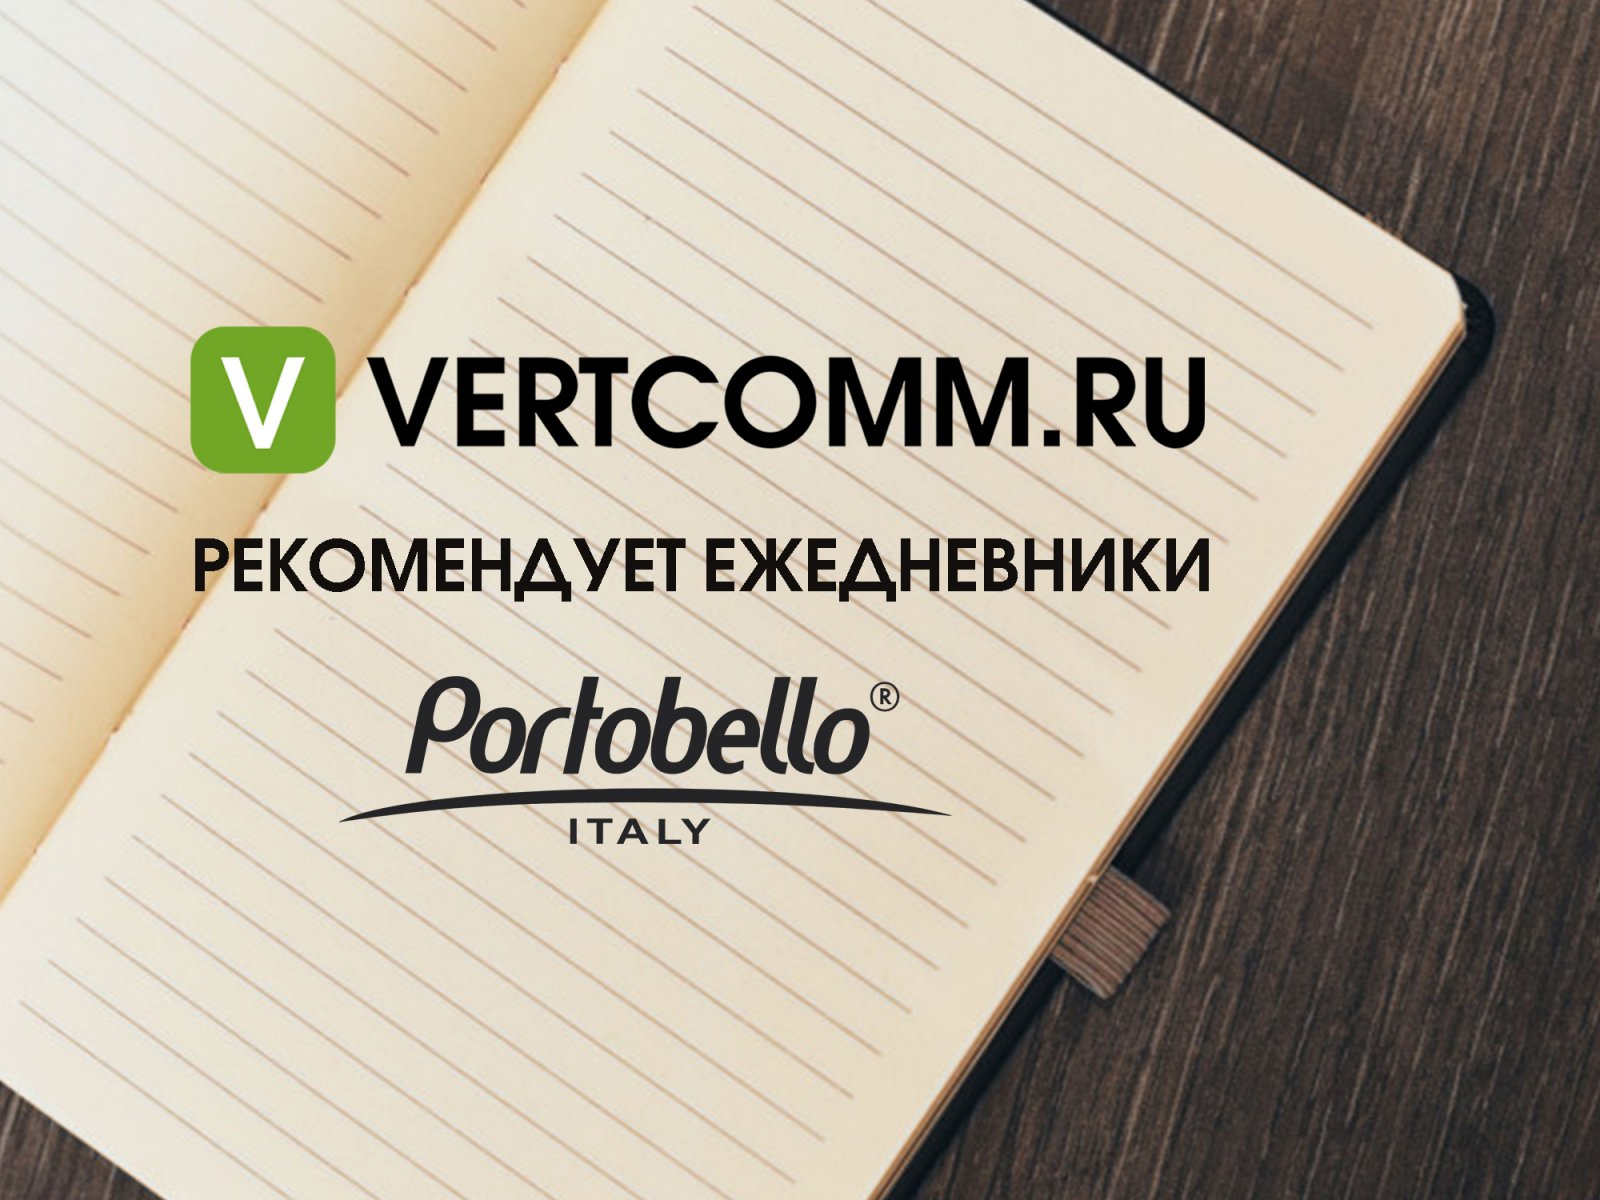 Vertcomm дарит power bank